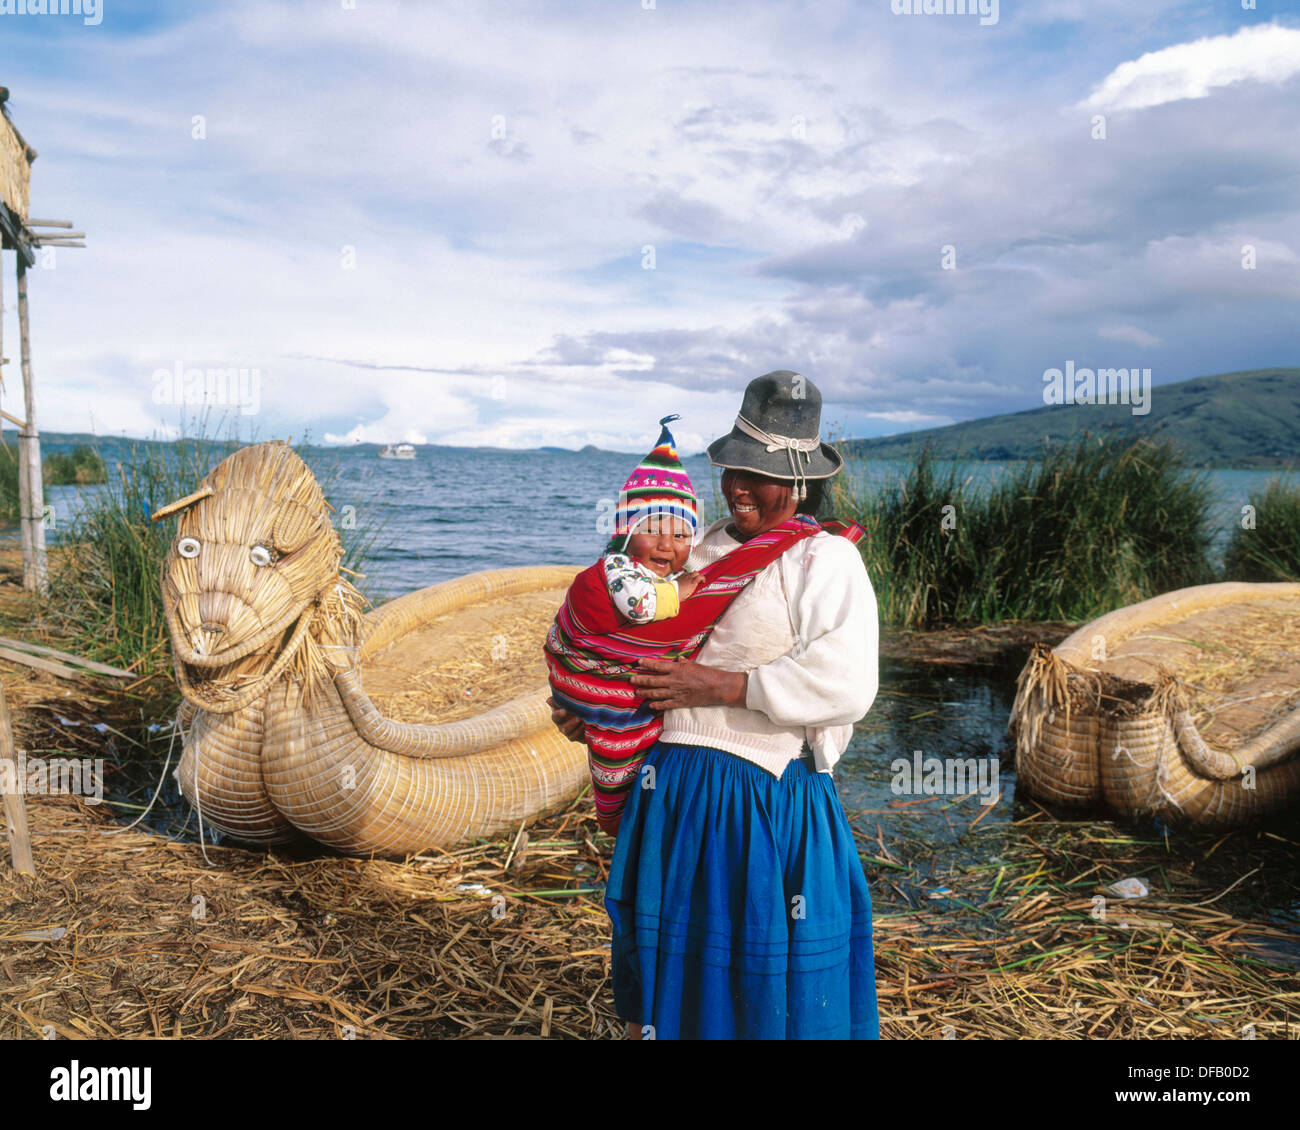 Uru indian mother and child and totora reeds boat. Titicaca Lake. Peru - Stock Image